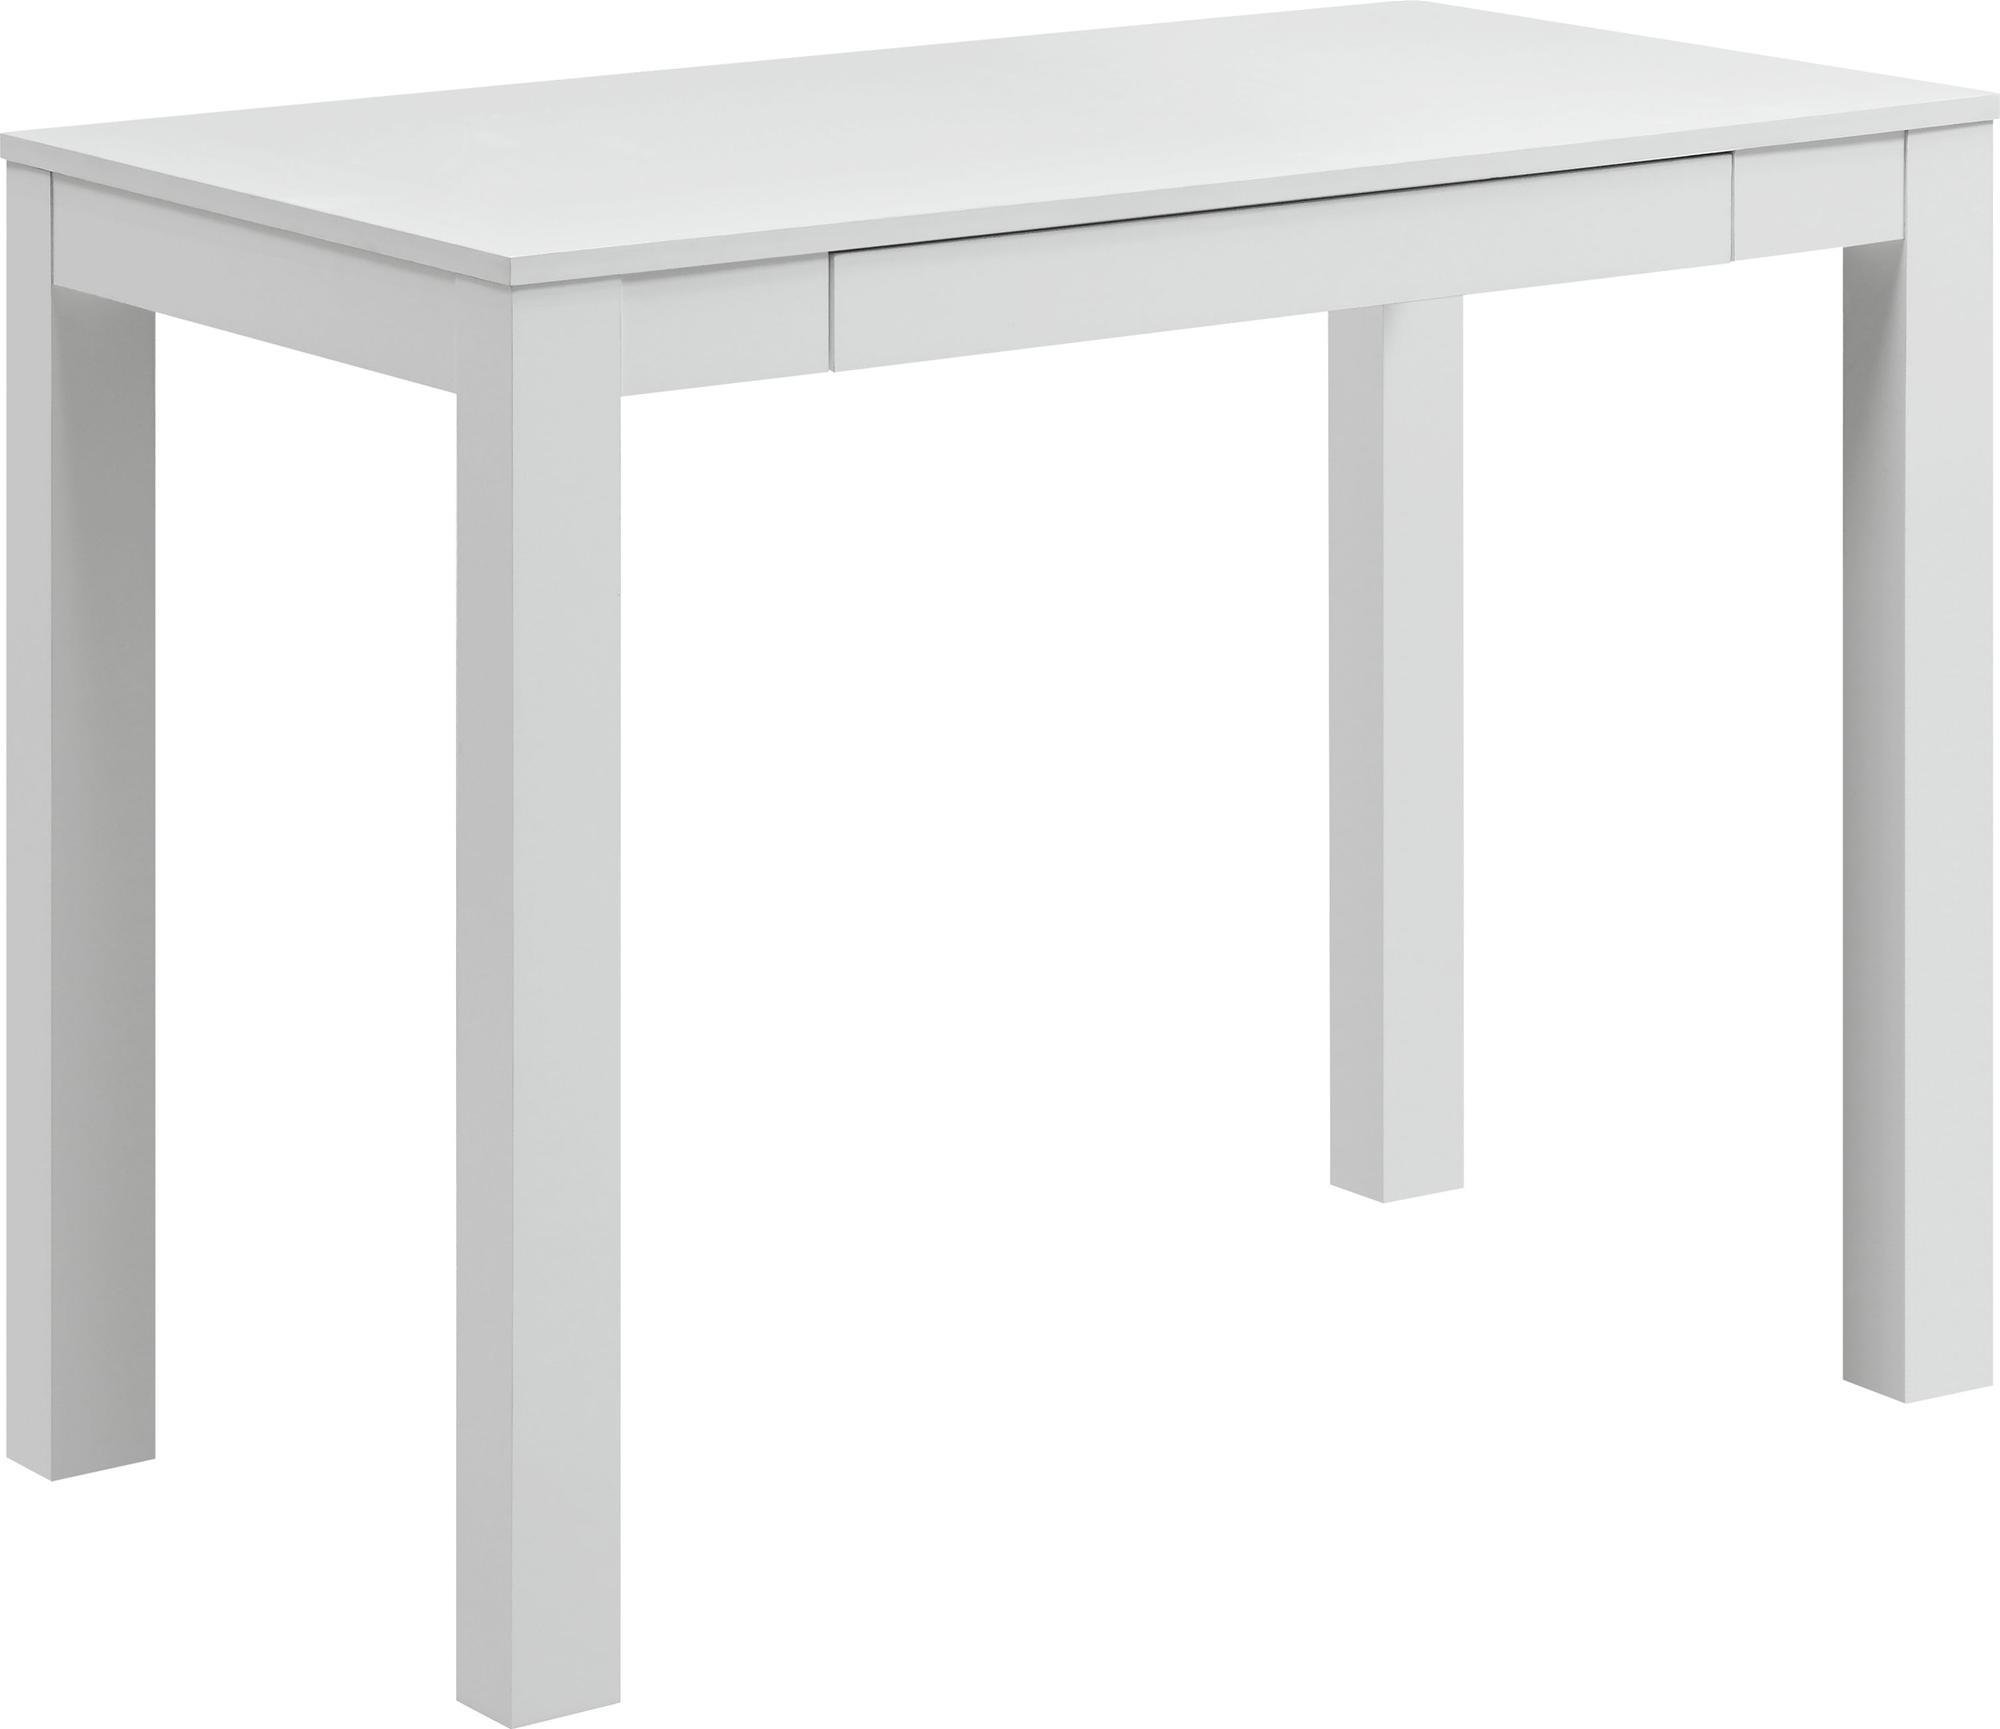 Ameriwood Home Parsons Desk with Drawer, White by Ameriwood Home